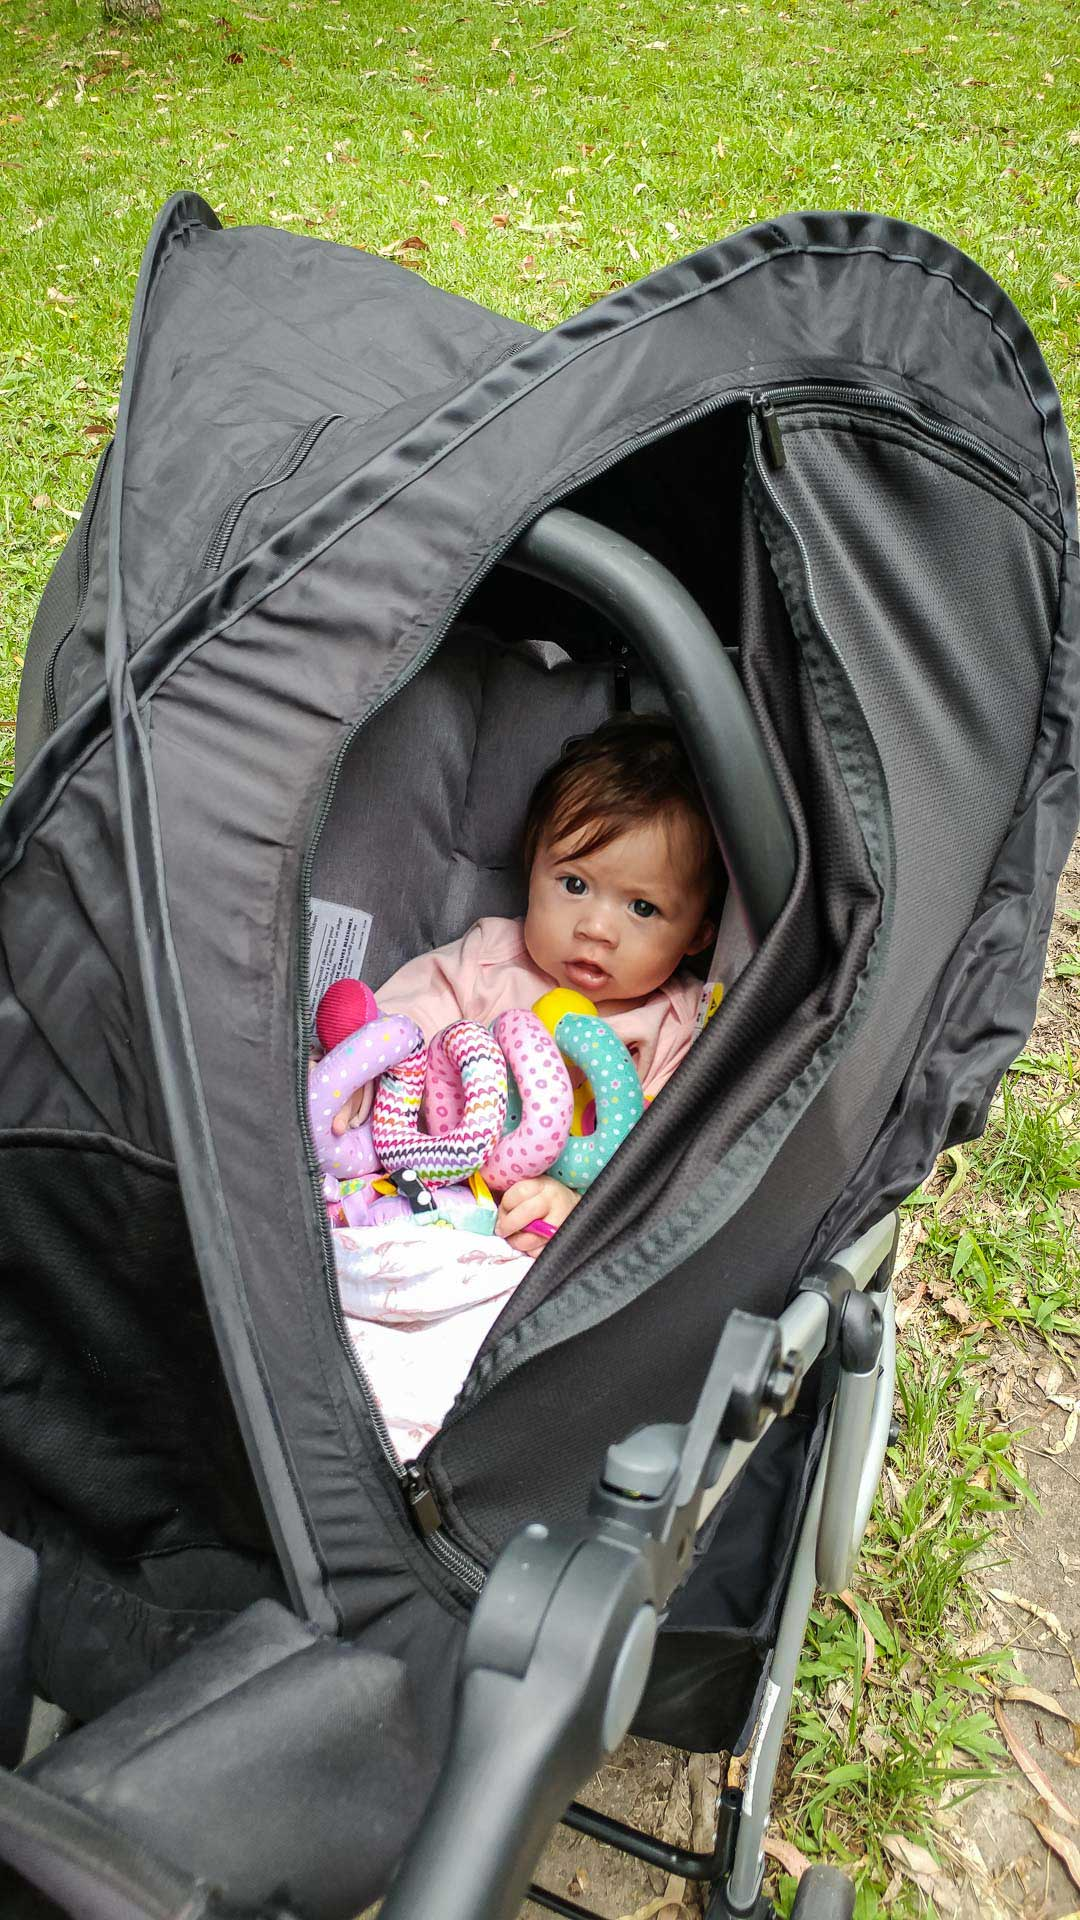 CoziGo Stroller Cover for Travel with Baby